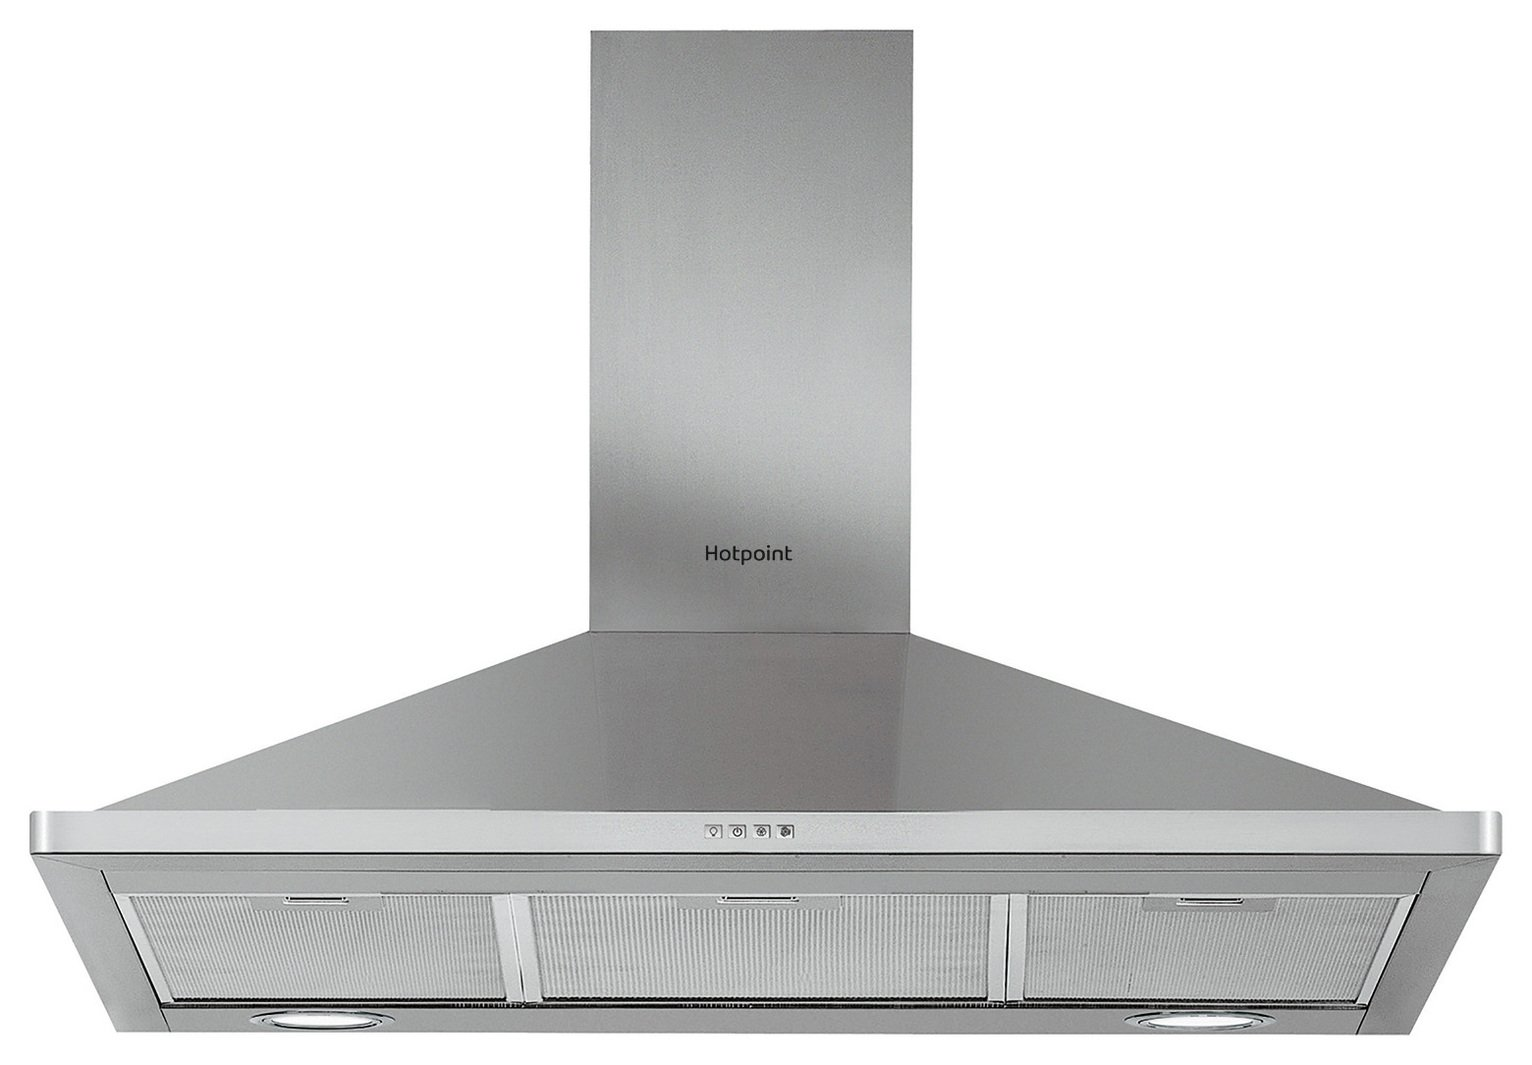 Hotpoint PHPN9.5FLMX 90cm Cooker Hood - Stanless Steel